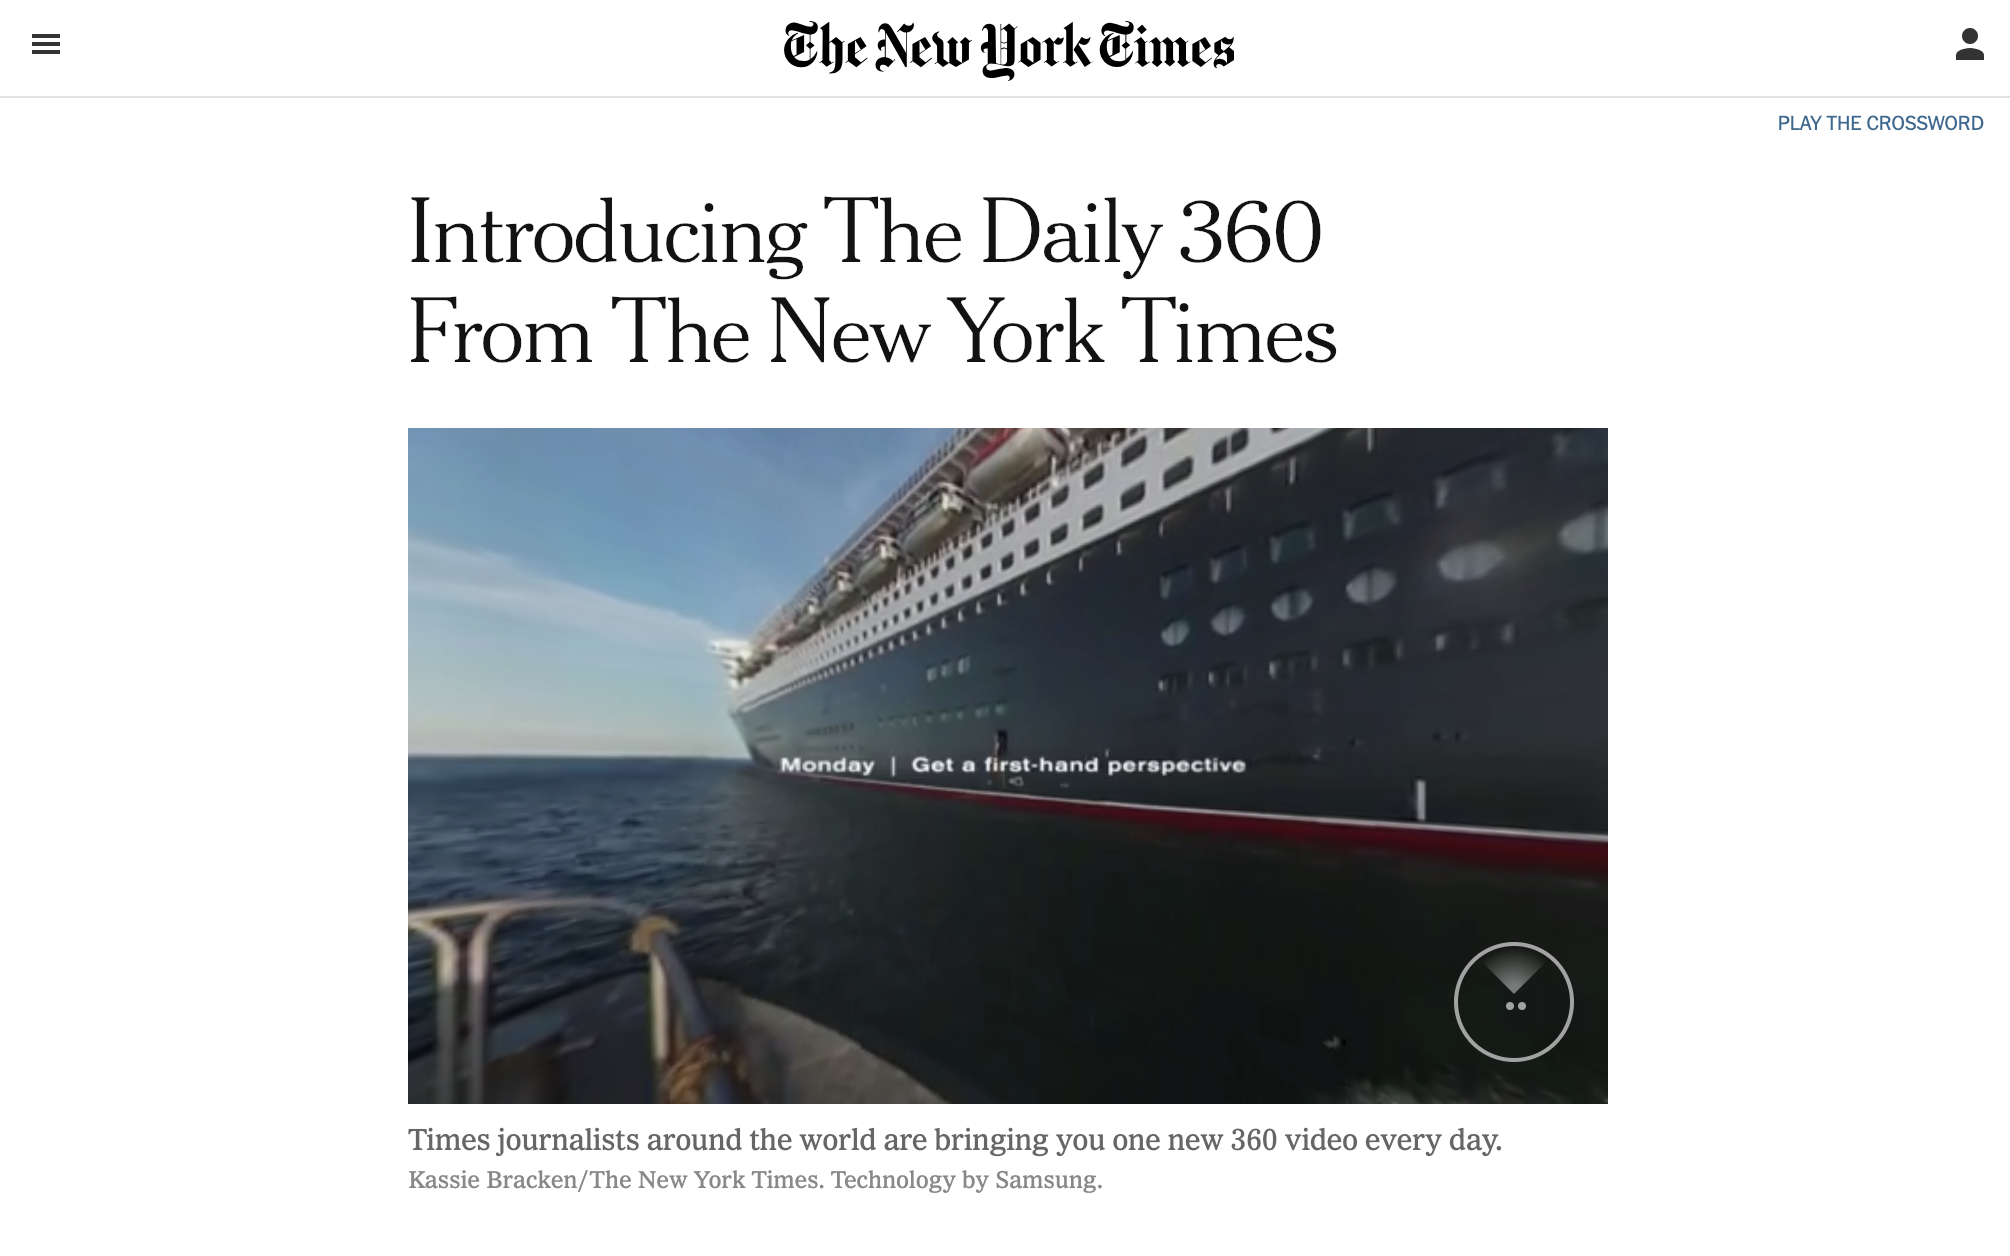 NYT Daily 360 - I am a devotee to the mini-documentaries published by the New York Times, but I find its 360° videos to be revolutionary. They often carries the dialogue of an article, but even if quiet, this immersive experience is a form of 21st century reading that might just inspire a student to form an affinity for newspapers.